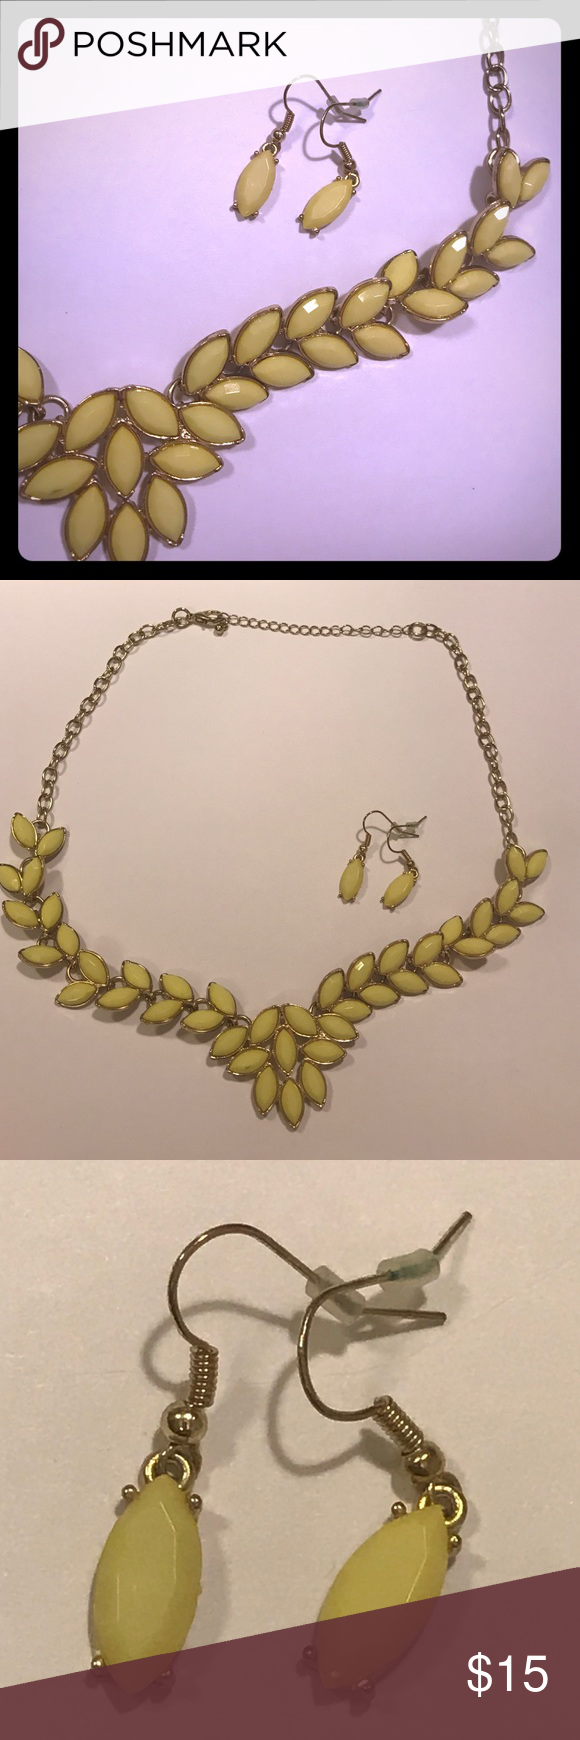 Yellow necklace & earring set Yellow and gold necklace and earring set. Short chain Jewelry Necklaces